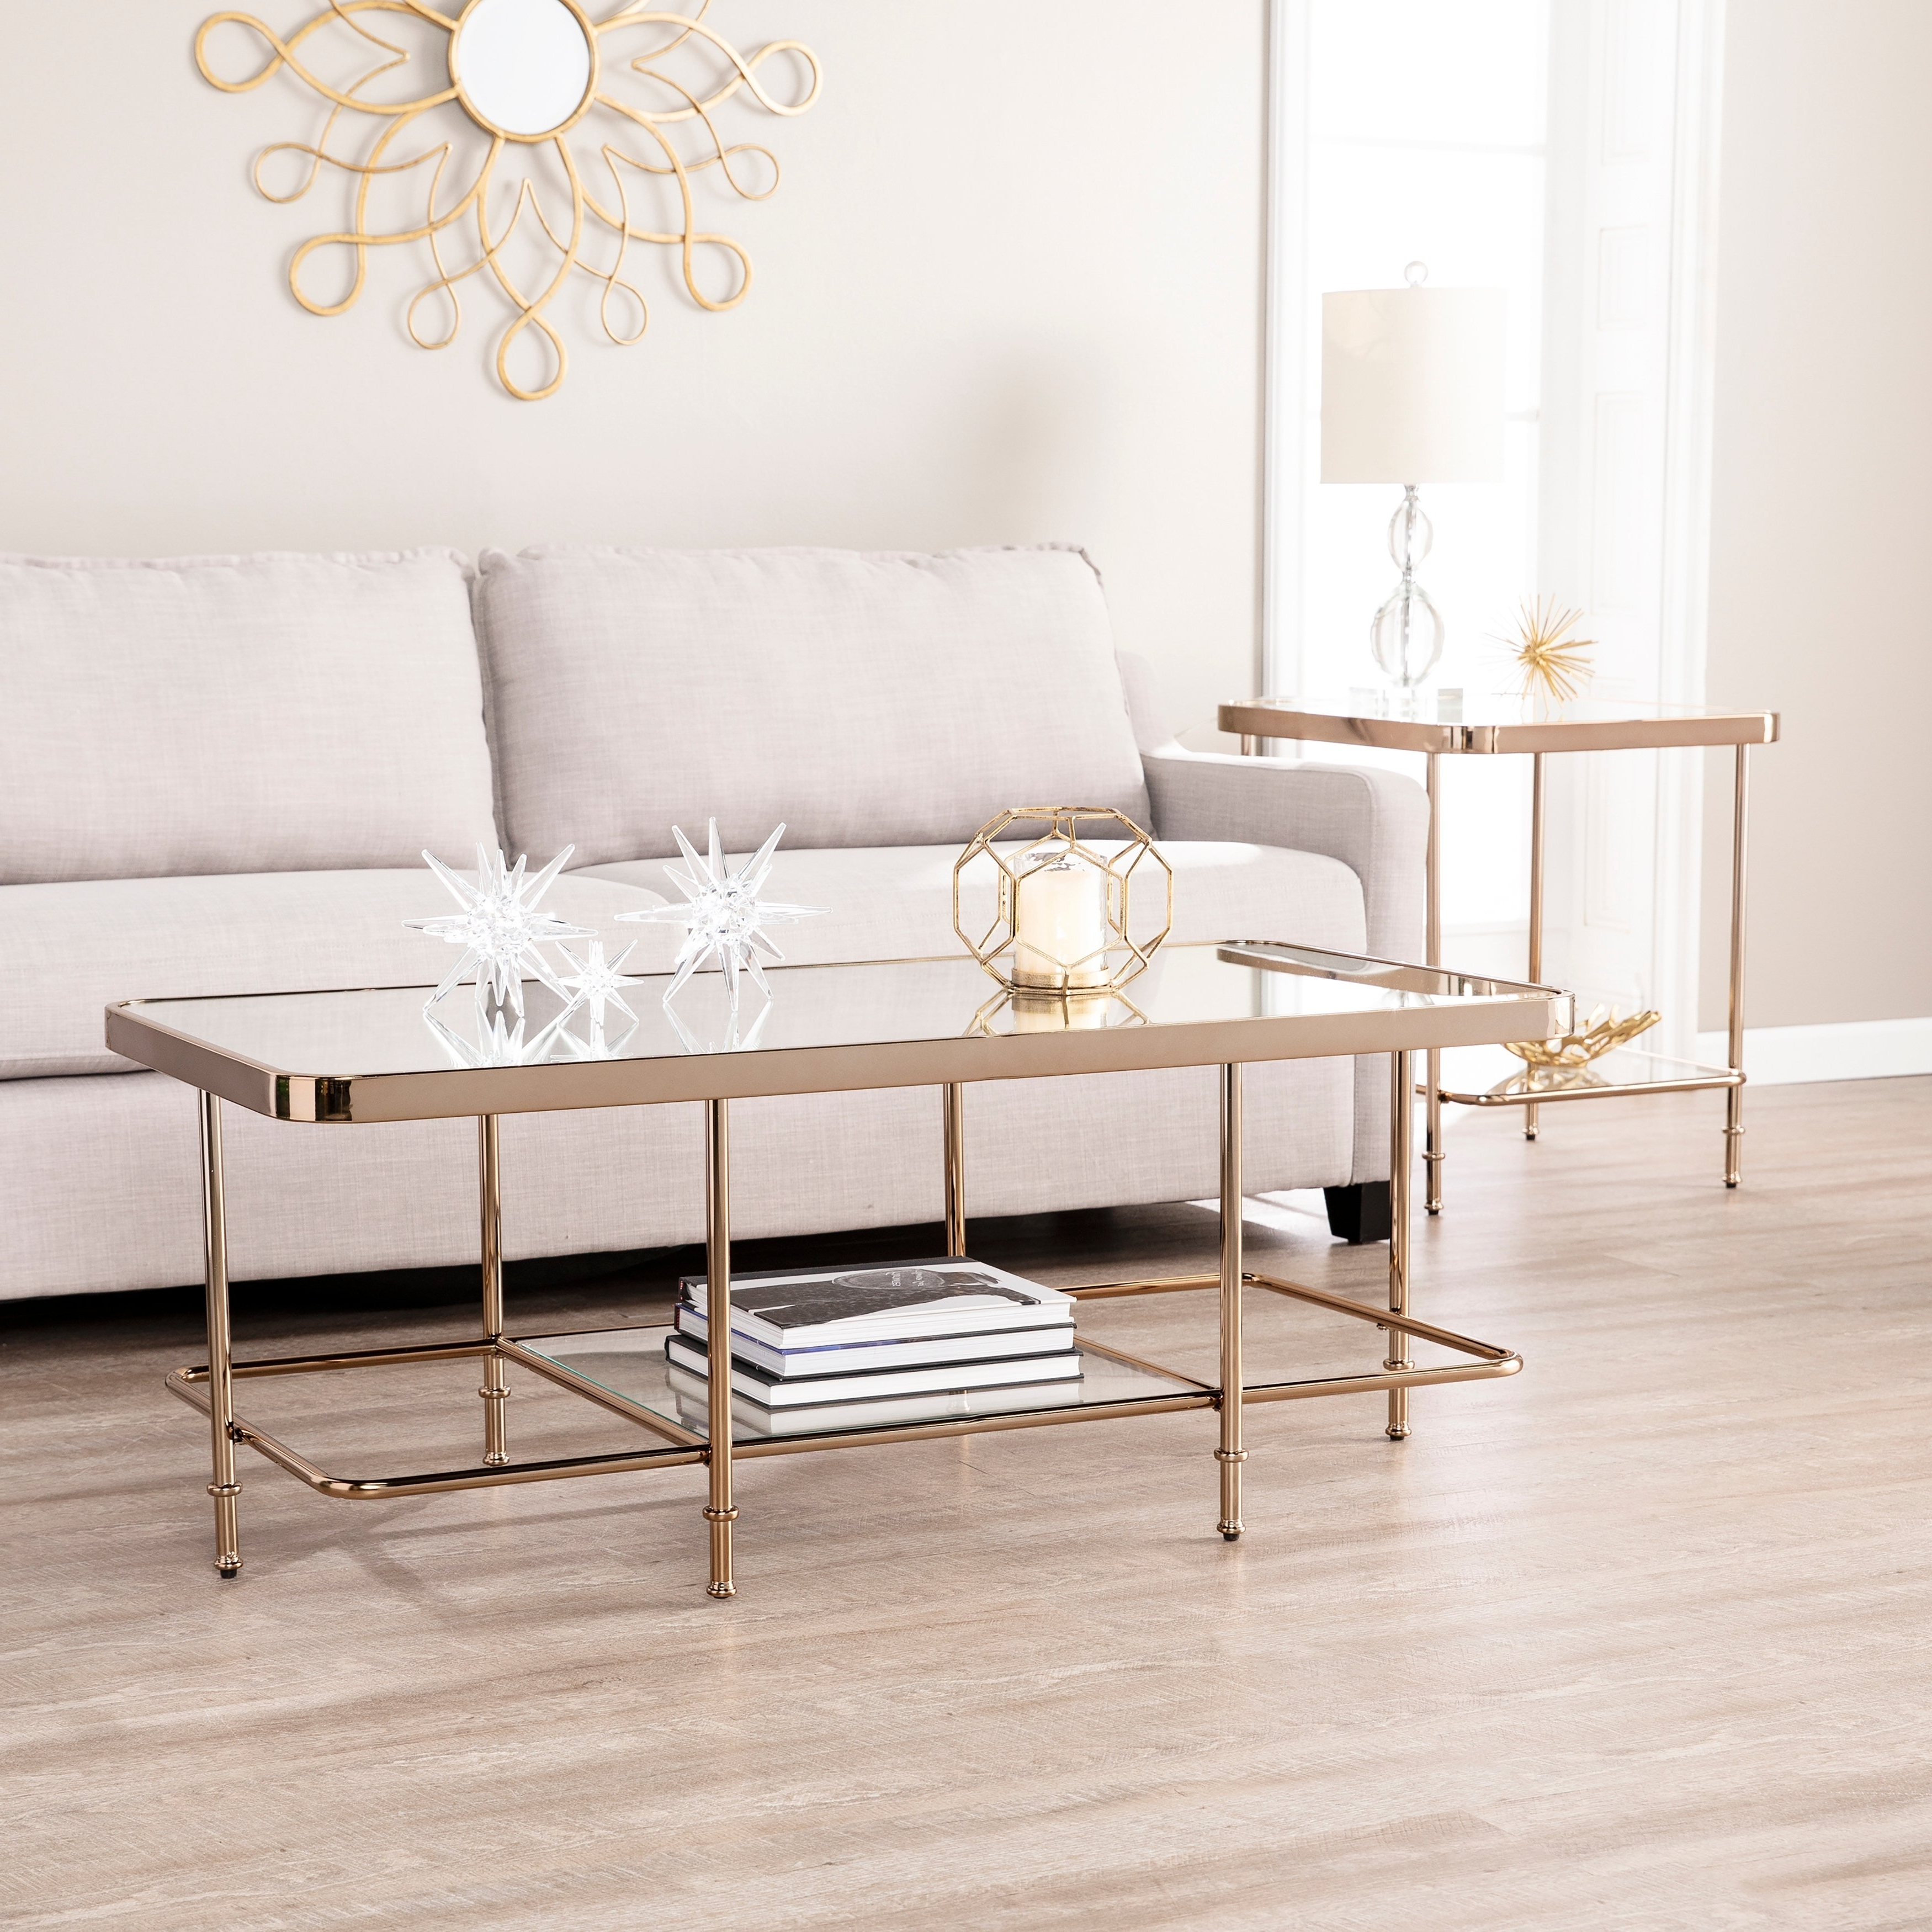 Popular Shop Harper Blvd Sanmeyer Champagne Mirrored Cocktail Table – Free With Harper Down Oversized Sofa Chairs (Gallery 18 of 20)